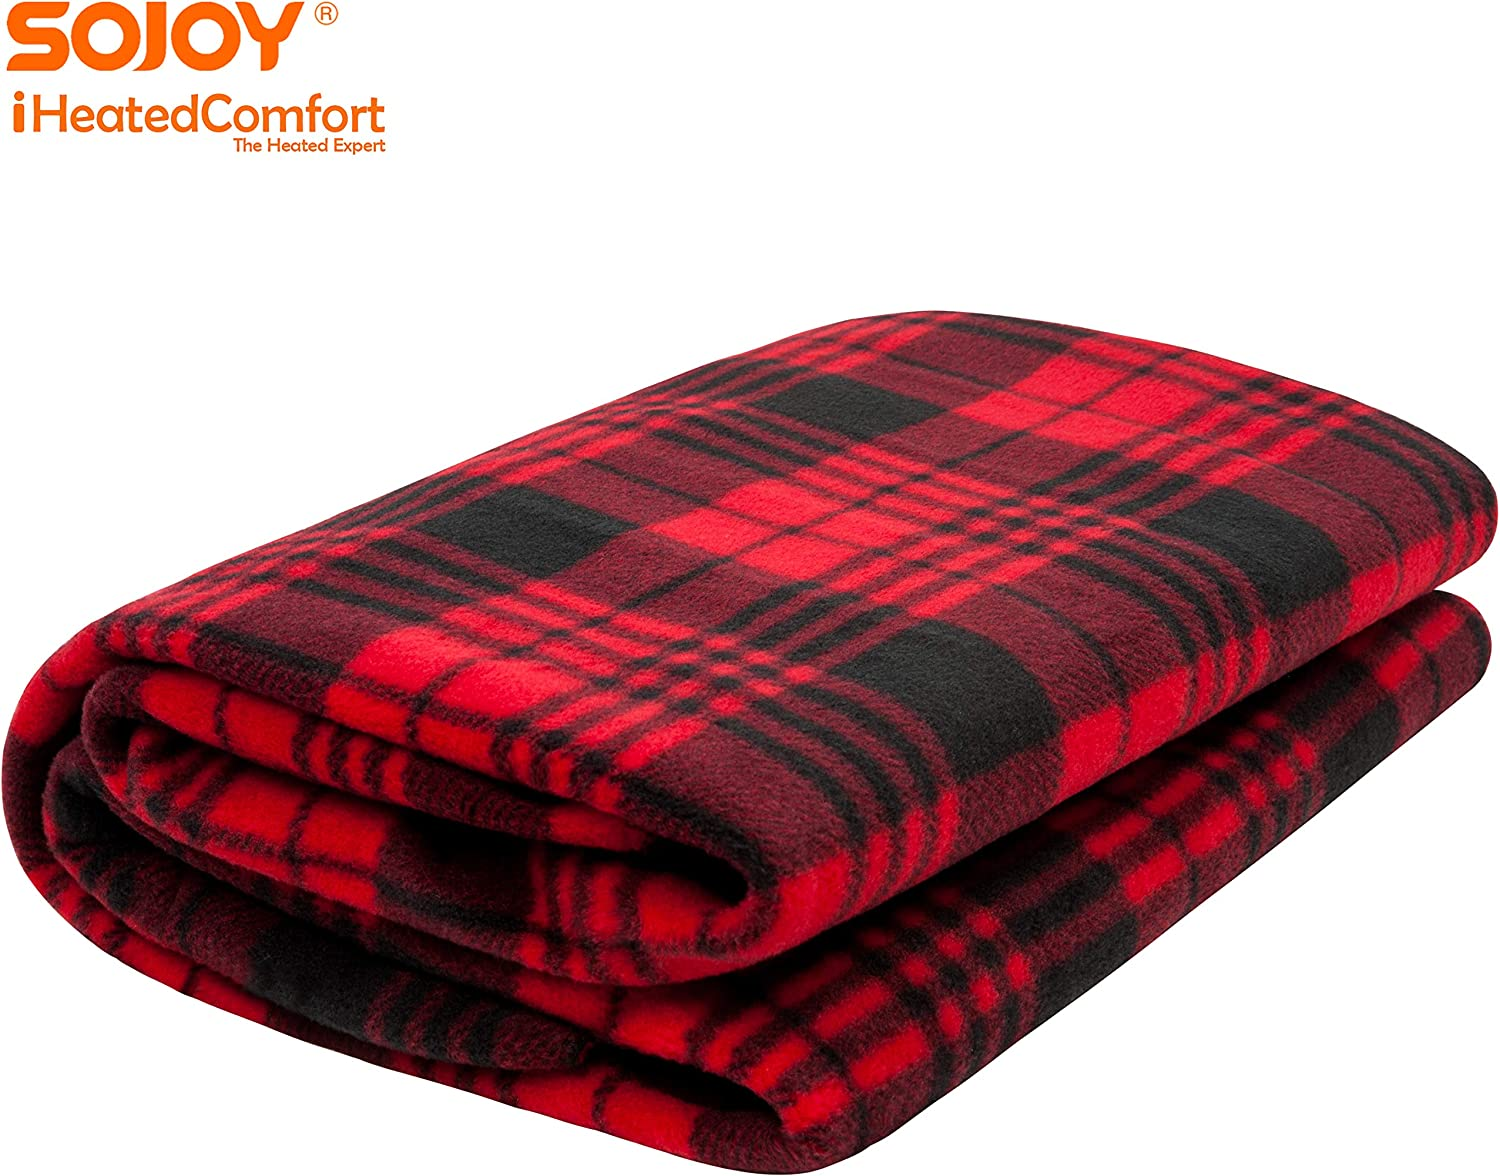 Sojoy 12V Heated Travel Electric Blanket for Car Checkered Black /& White Truck 60x 40 Boats or RV with High//Low Temp Control